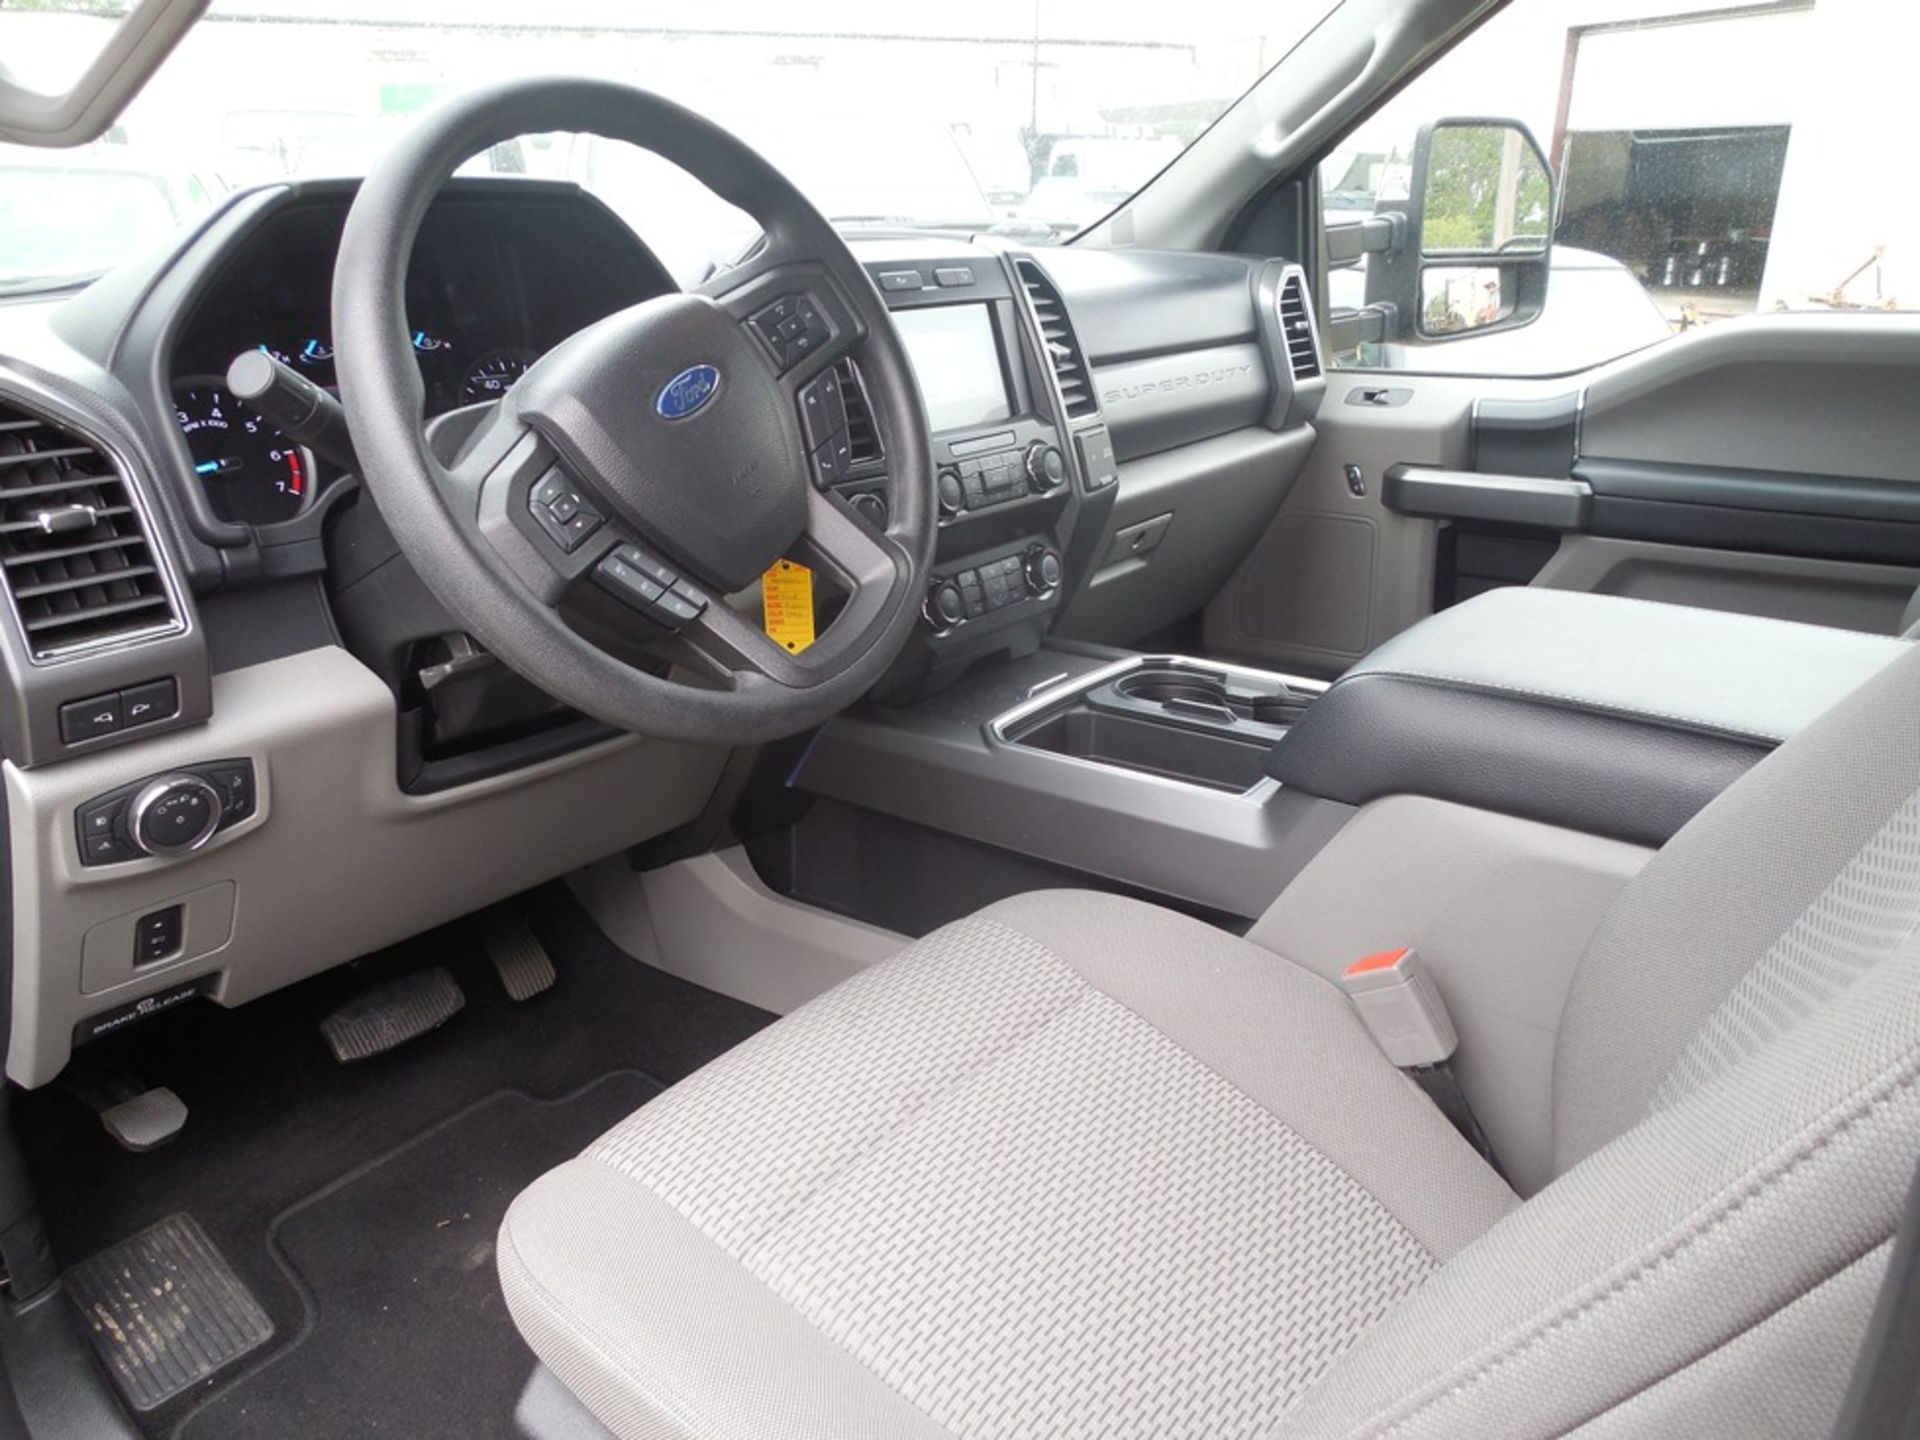 2019 Ford F250 XLT 4wd, 4dr, gas, vin# 1FT7W2B61KEC95867 19,999 miles - Image 6 of 7